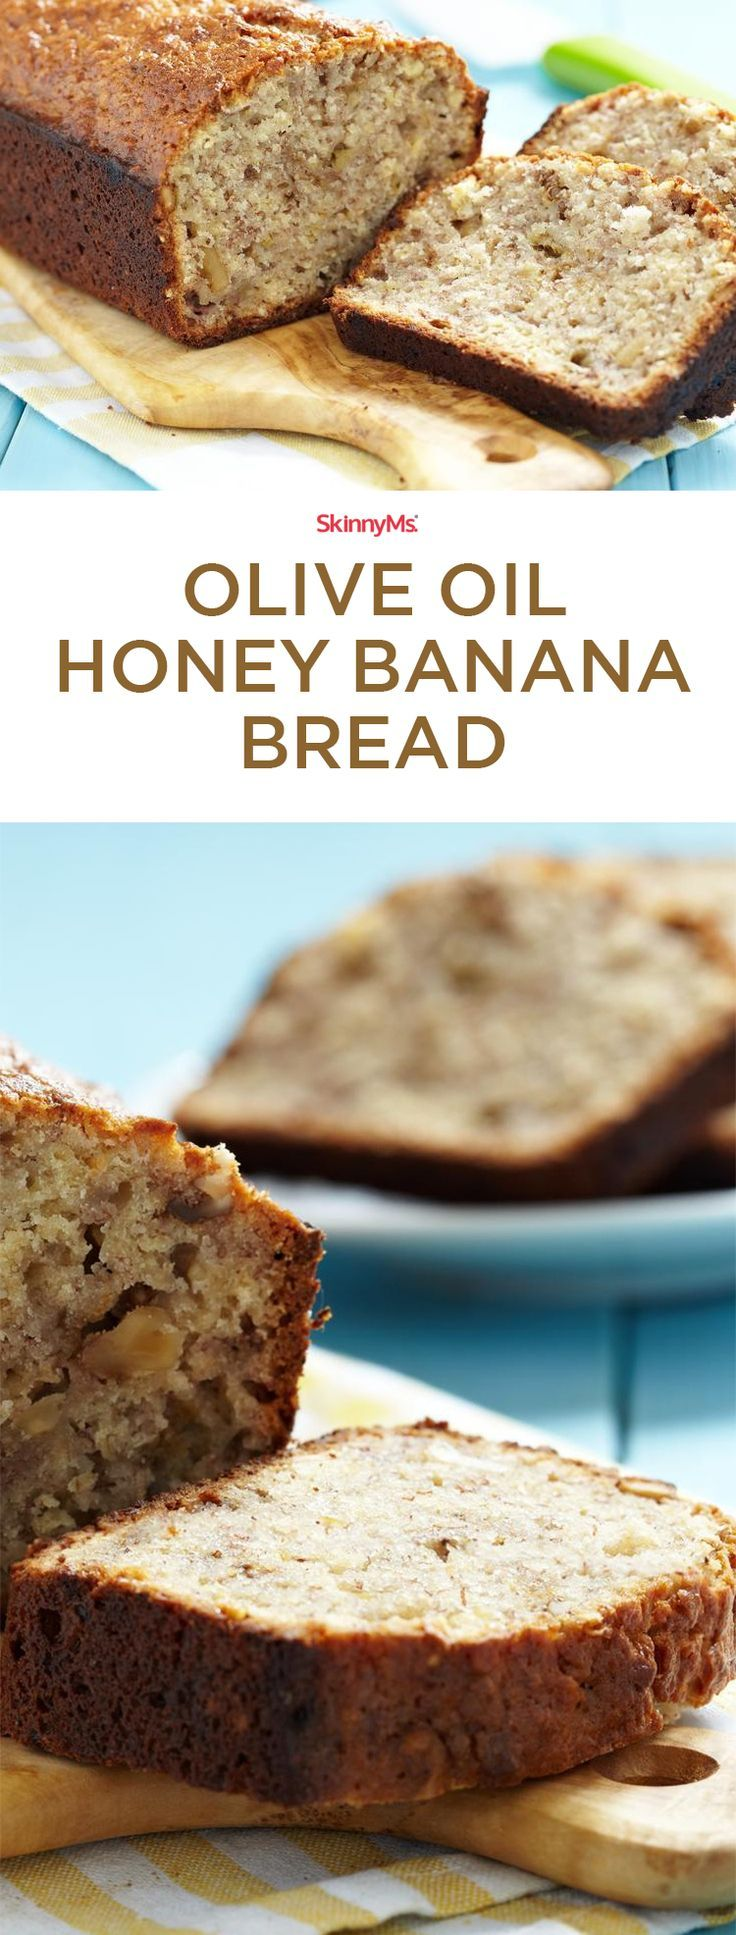 1000+ images about healthy meals on Pinterest | Clean eating, Healthy ...